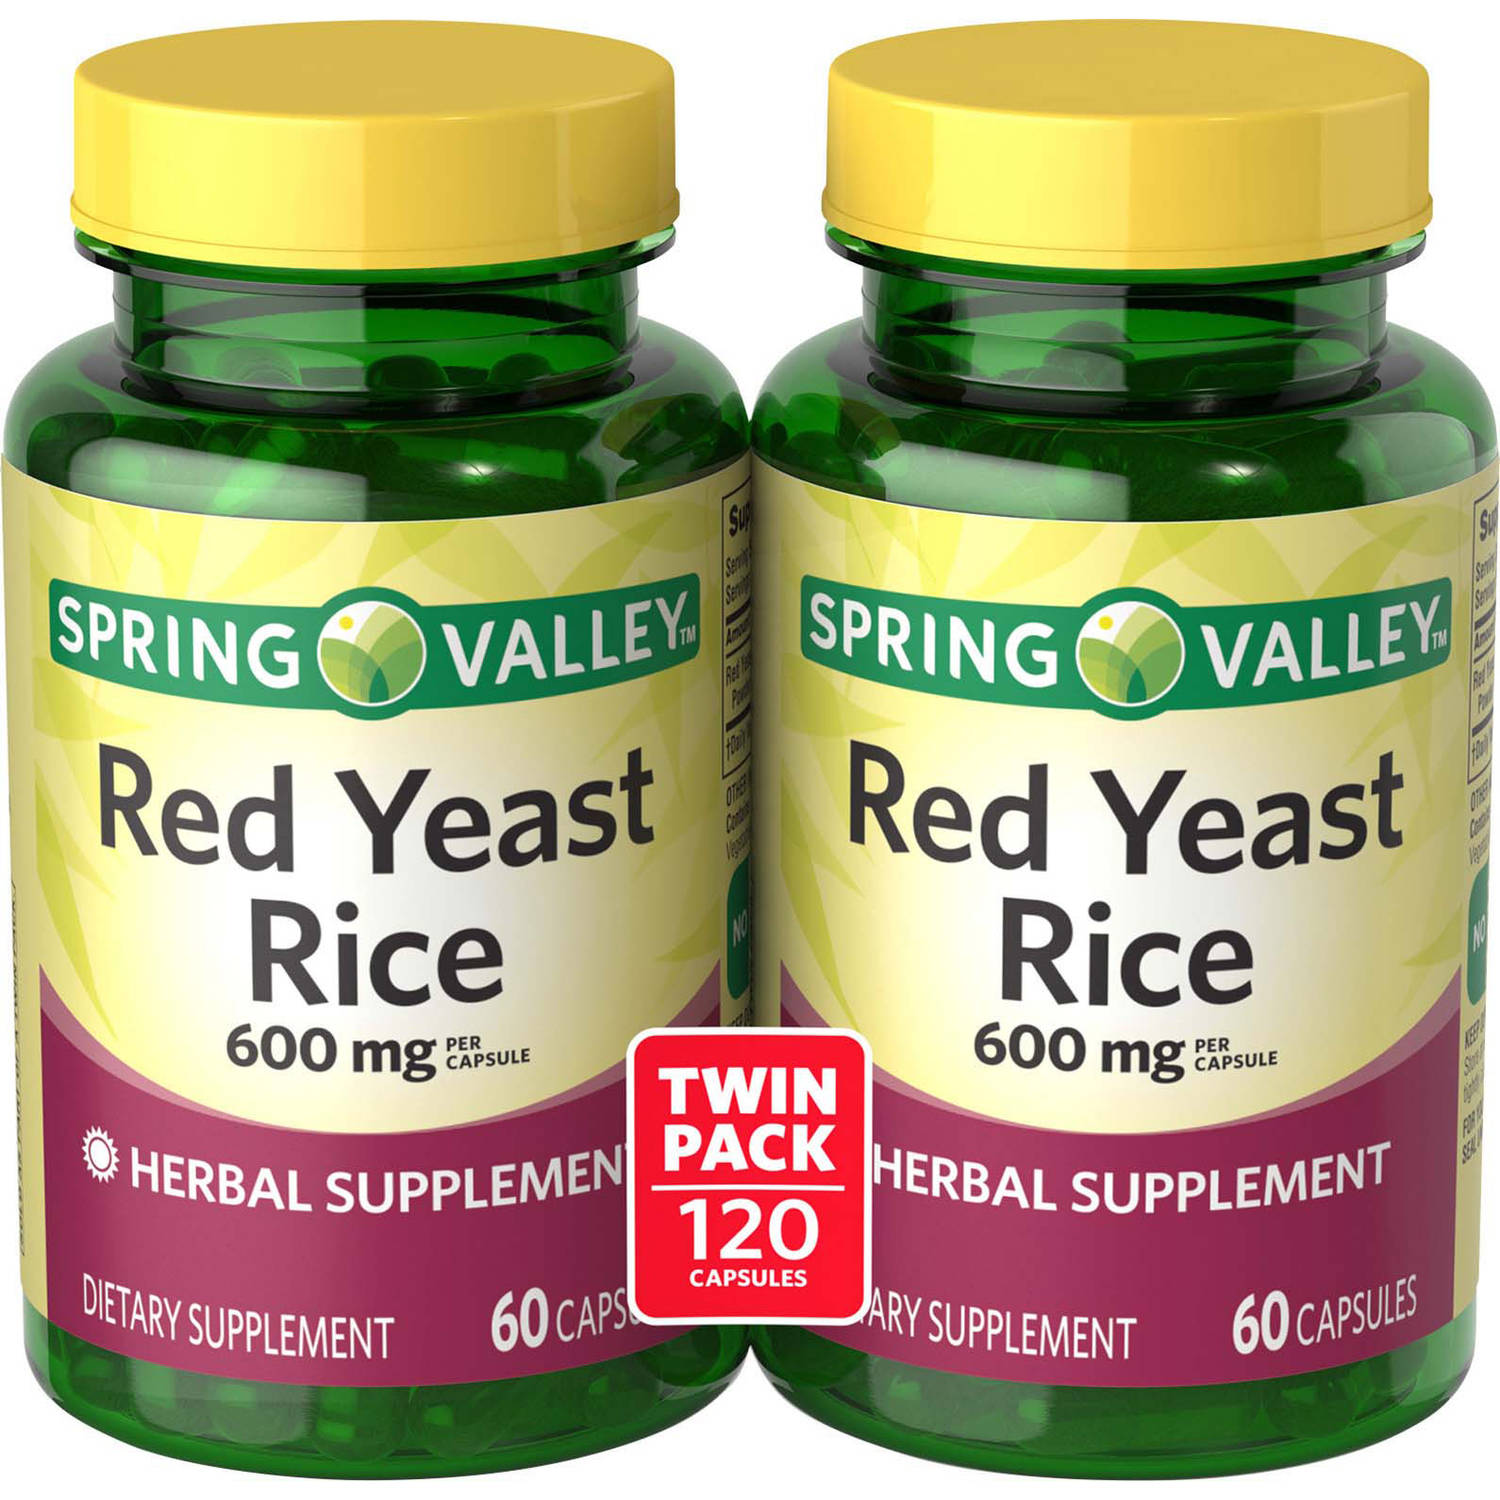 Spring Valley Red Yeast Rice Dietary Supplement Capsules, 600 mg, 60 count, 2 pack